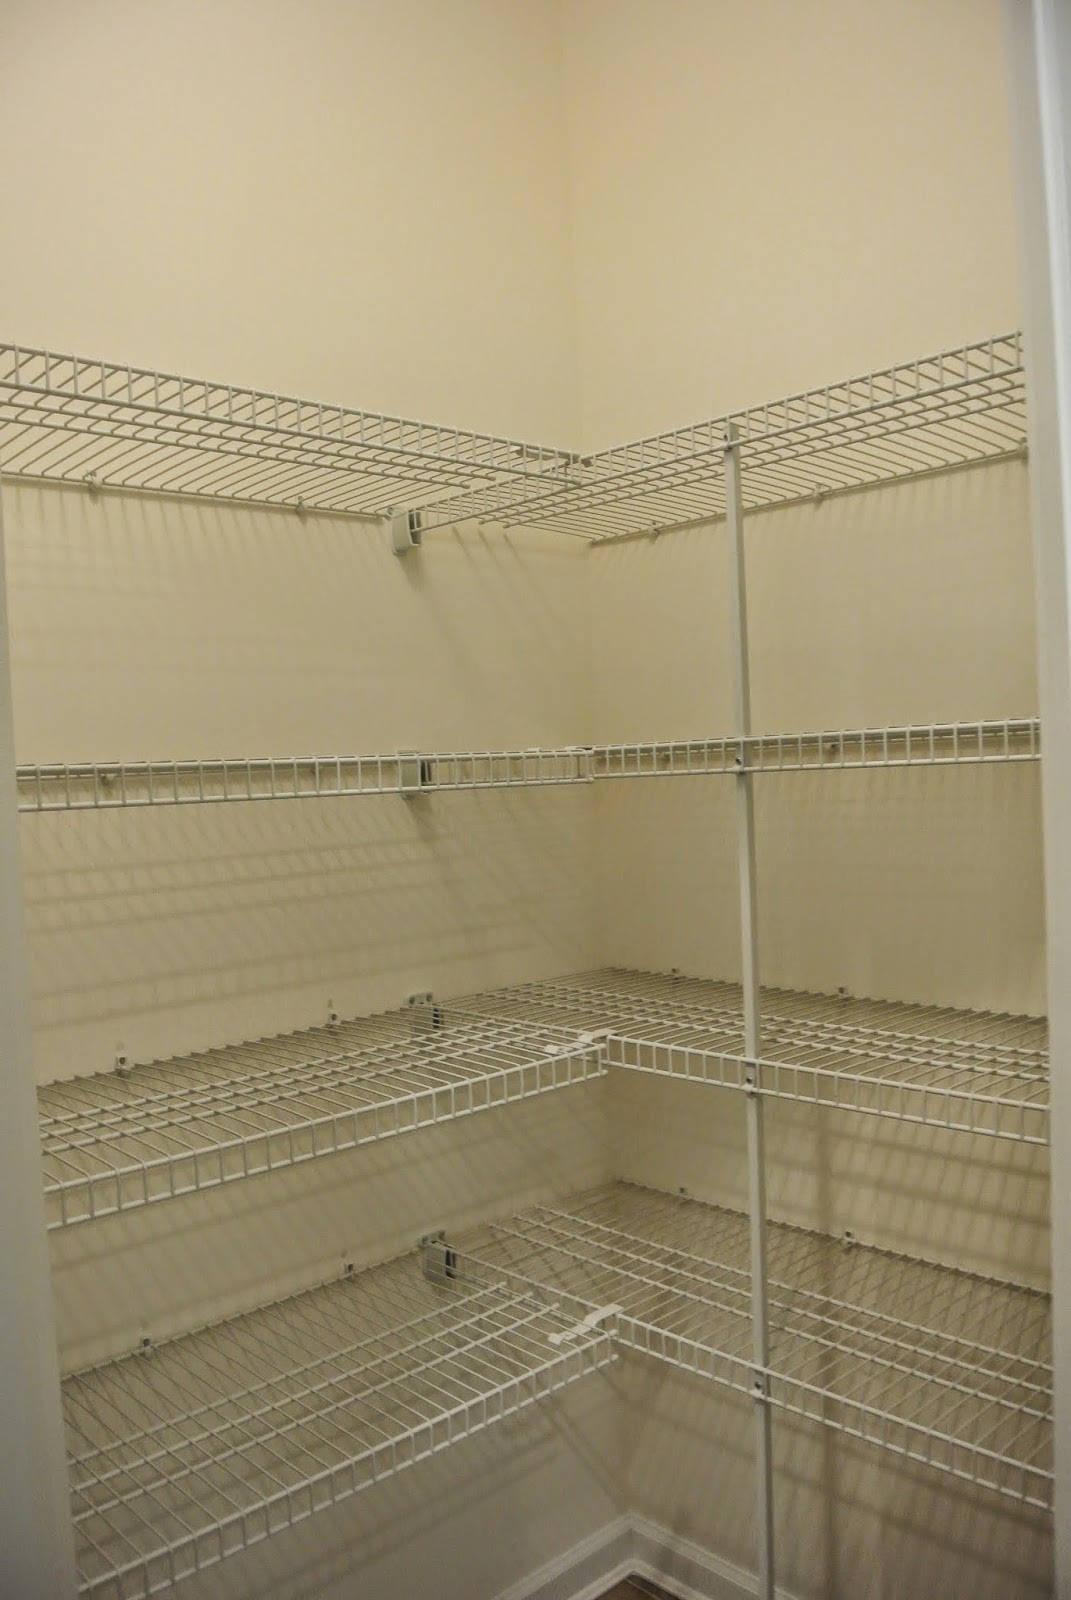 A picture of the pantry shelves